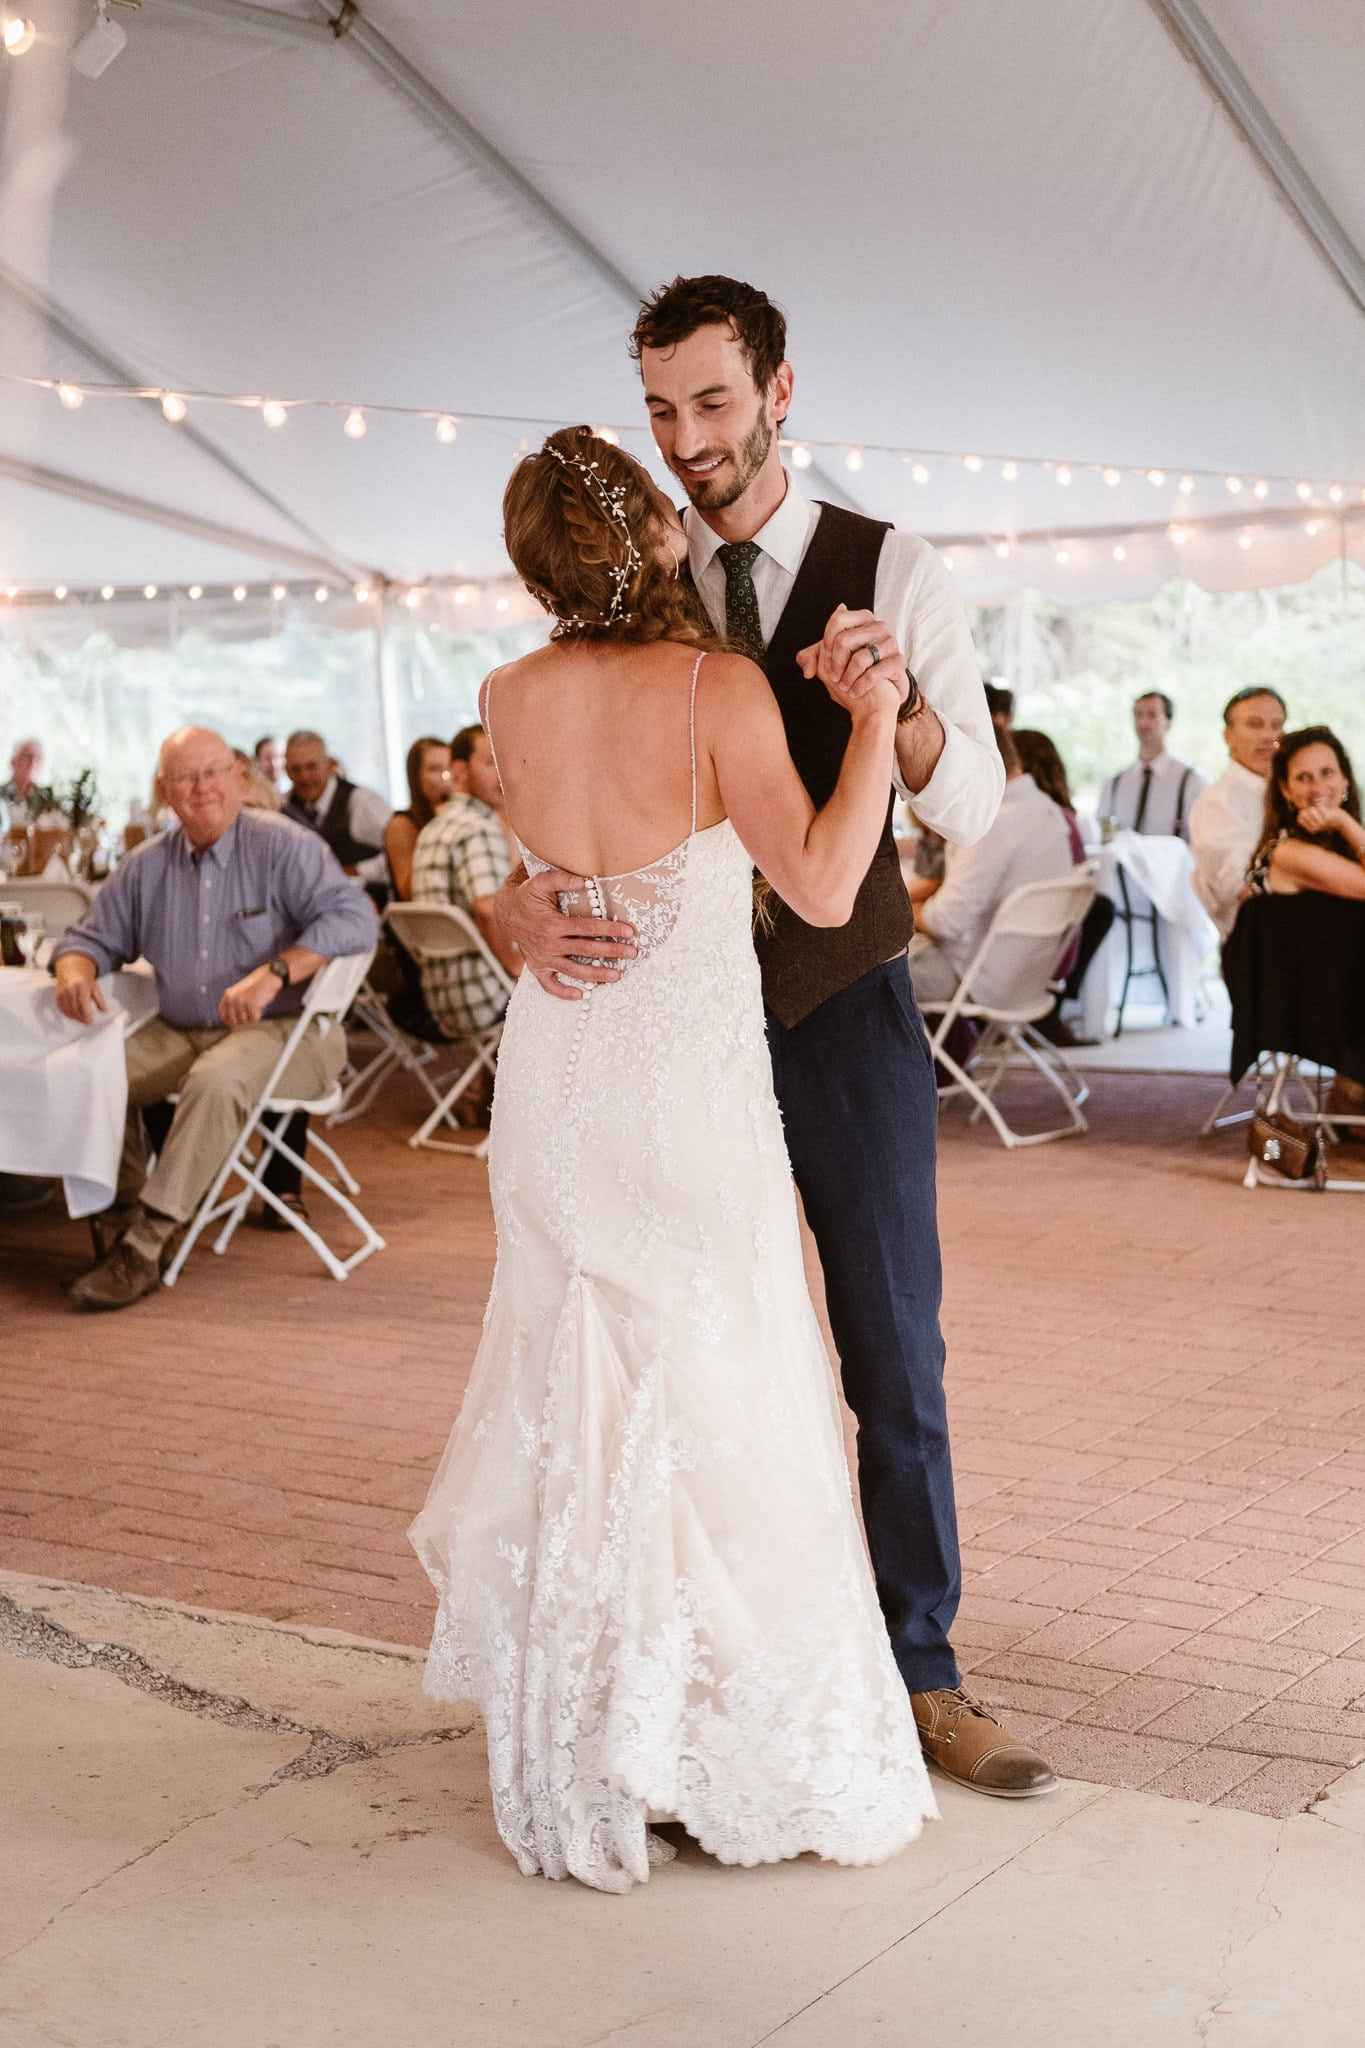 Redstone Inn wedding photographer, Carbondale wedding photographer, Colorado intimate wedding photographer, bride and groom first dance